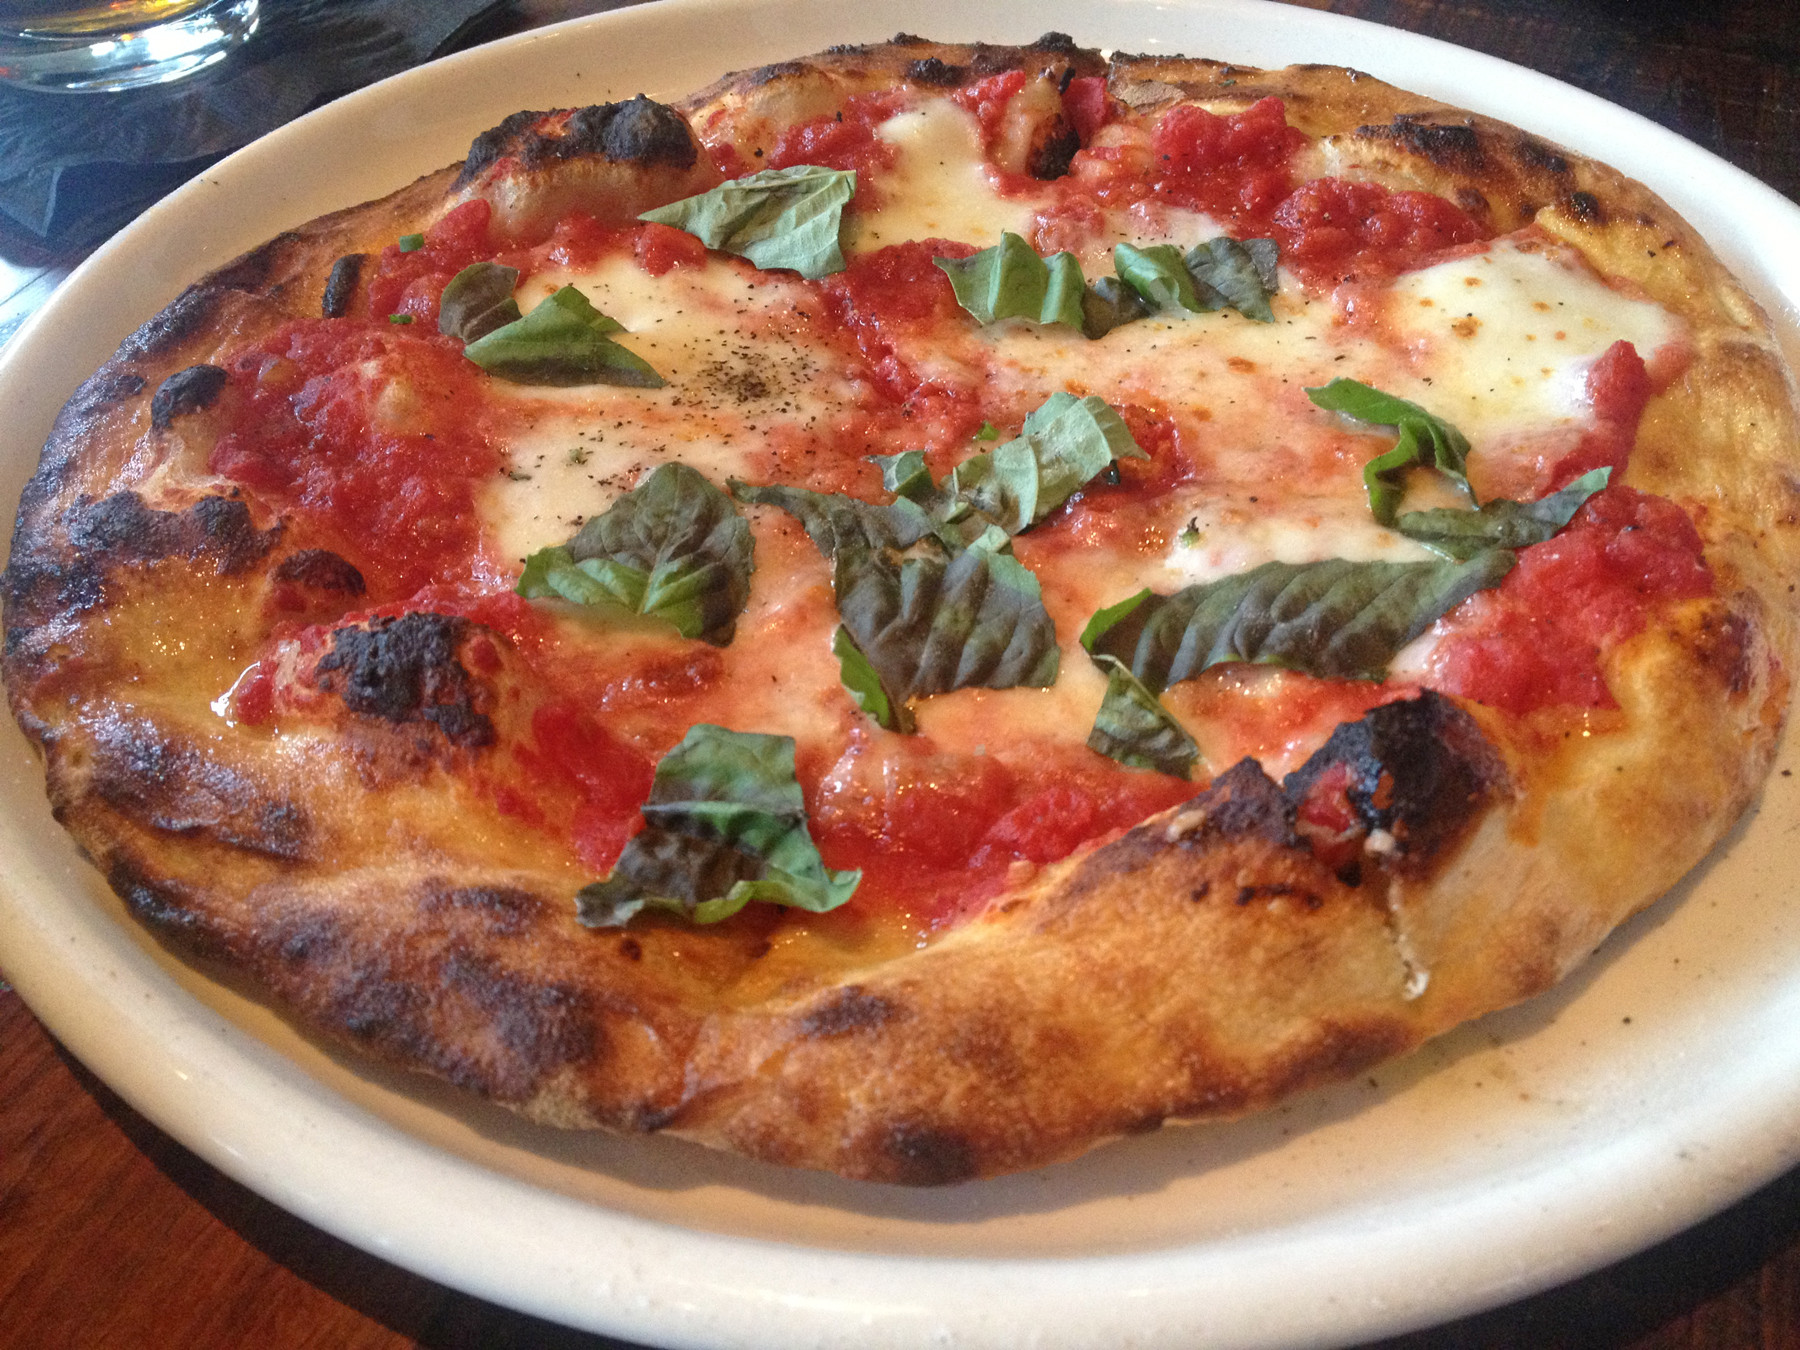 The margherita brick-oven pizza